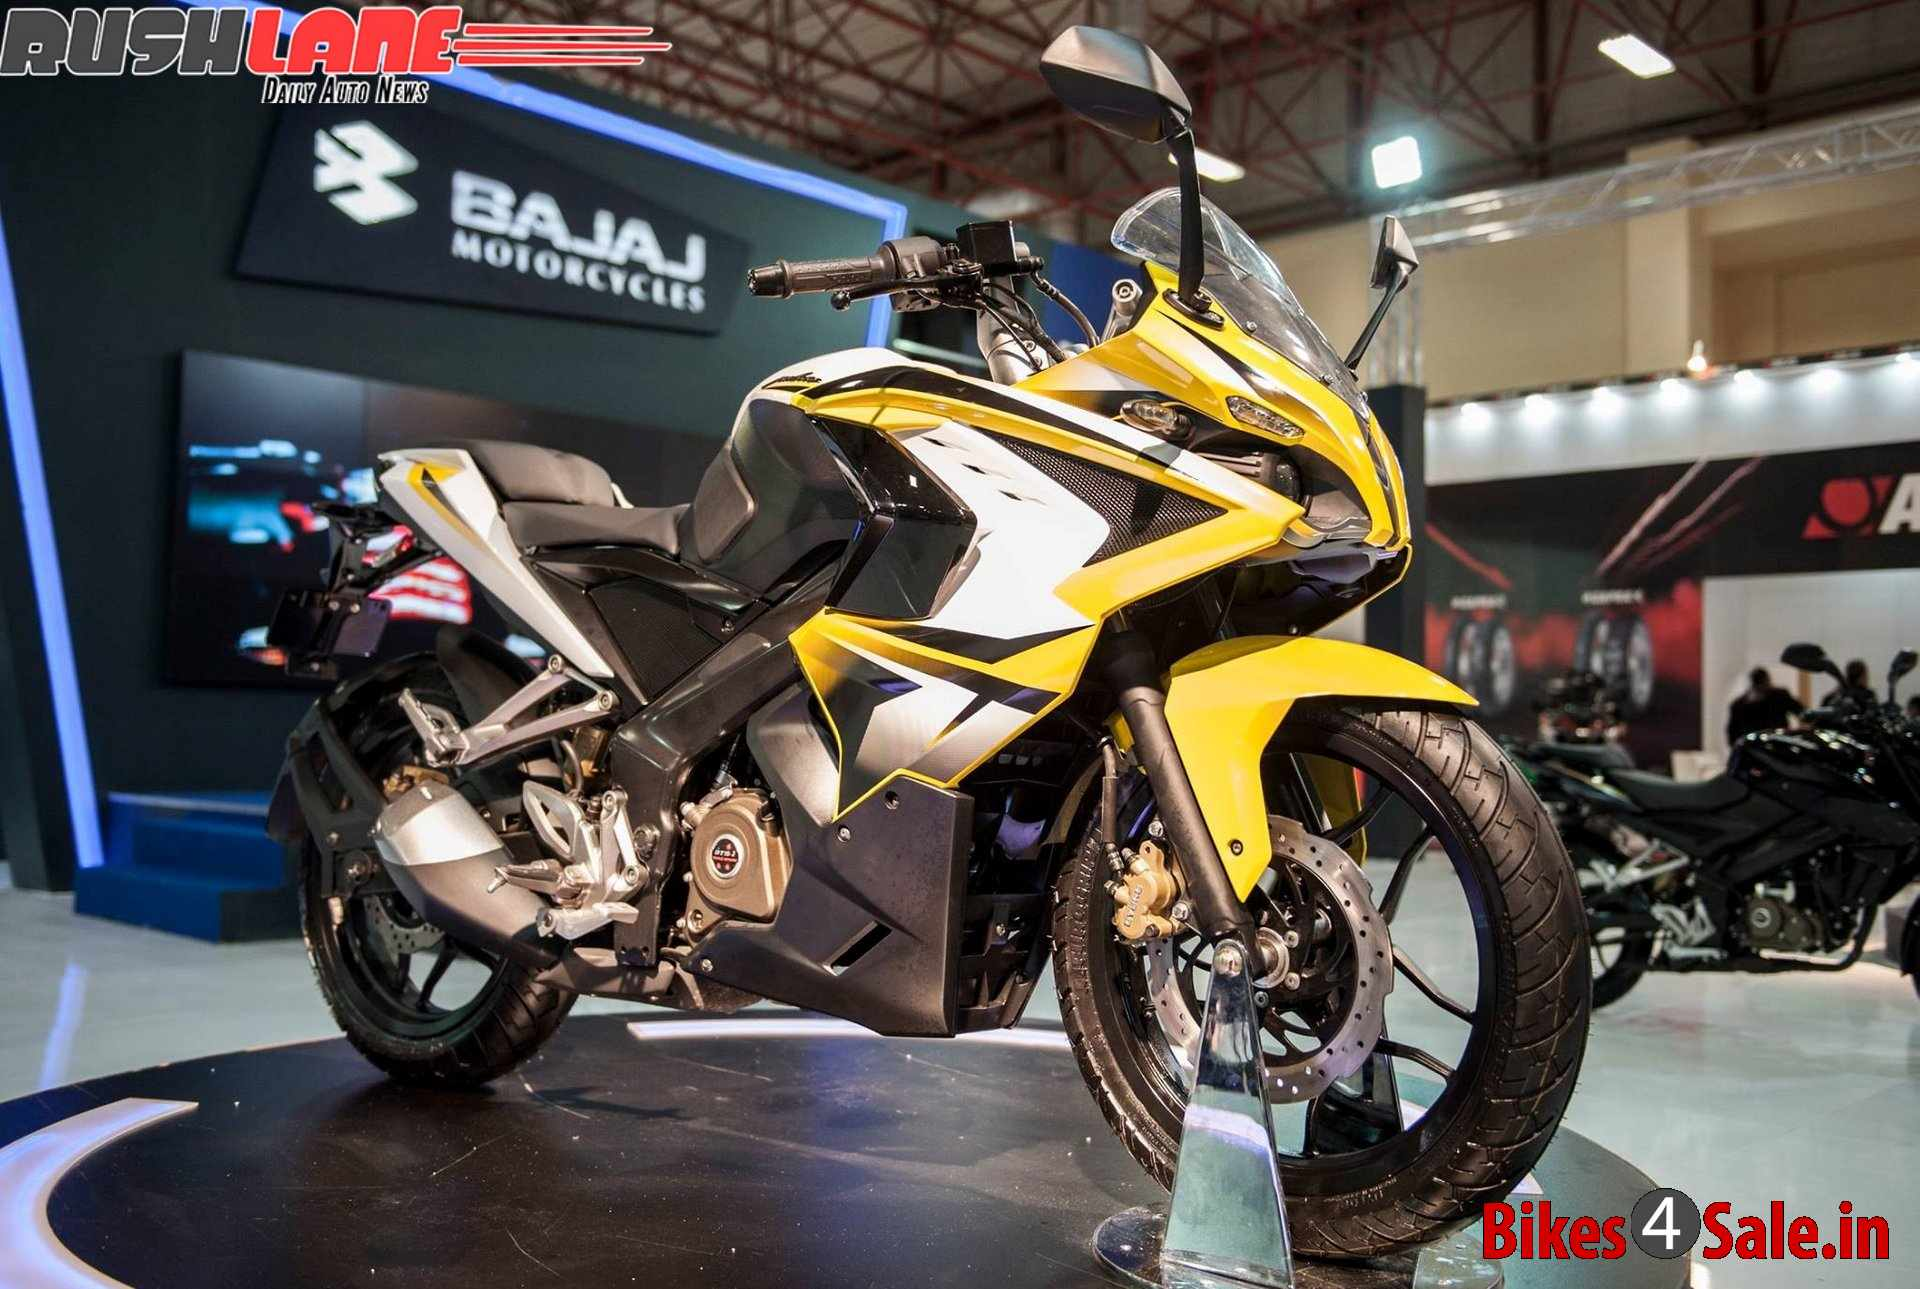 Bajaj Pulsar 200 Ss Pictures to pin on Pinterest